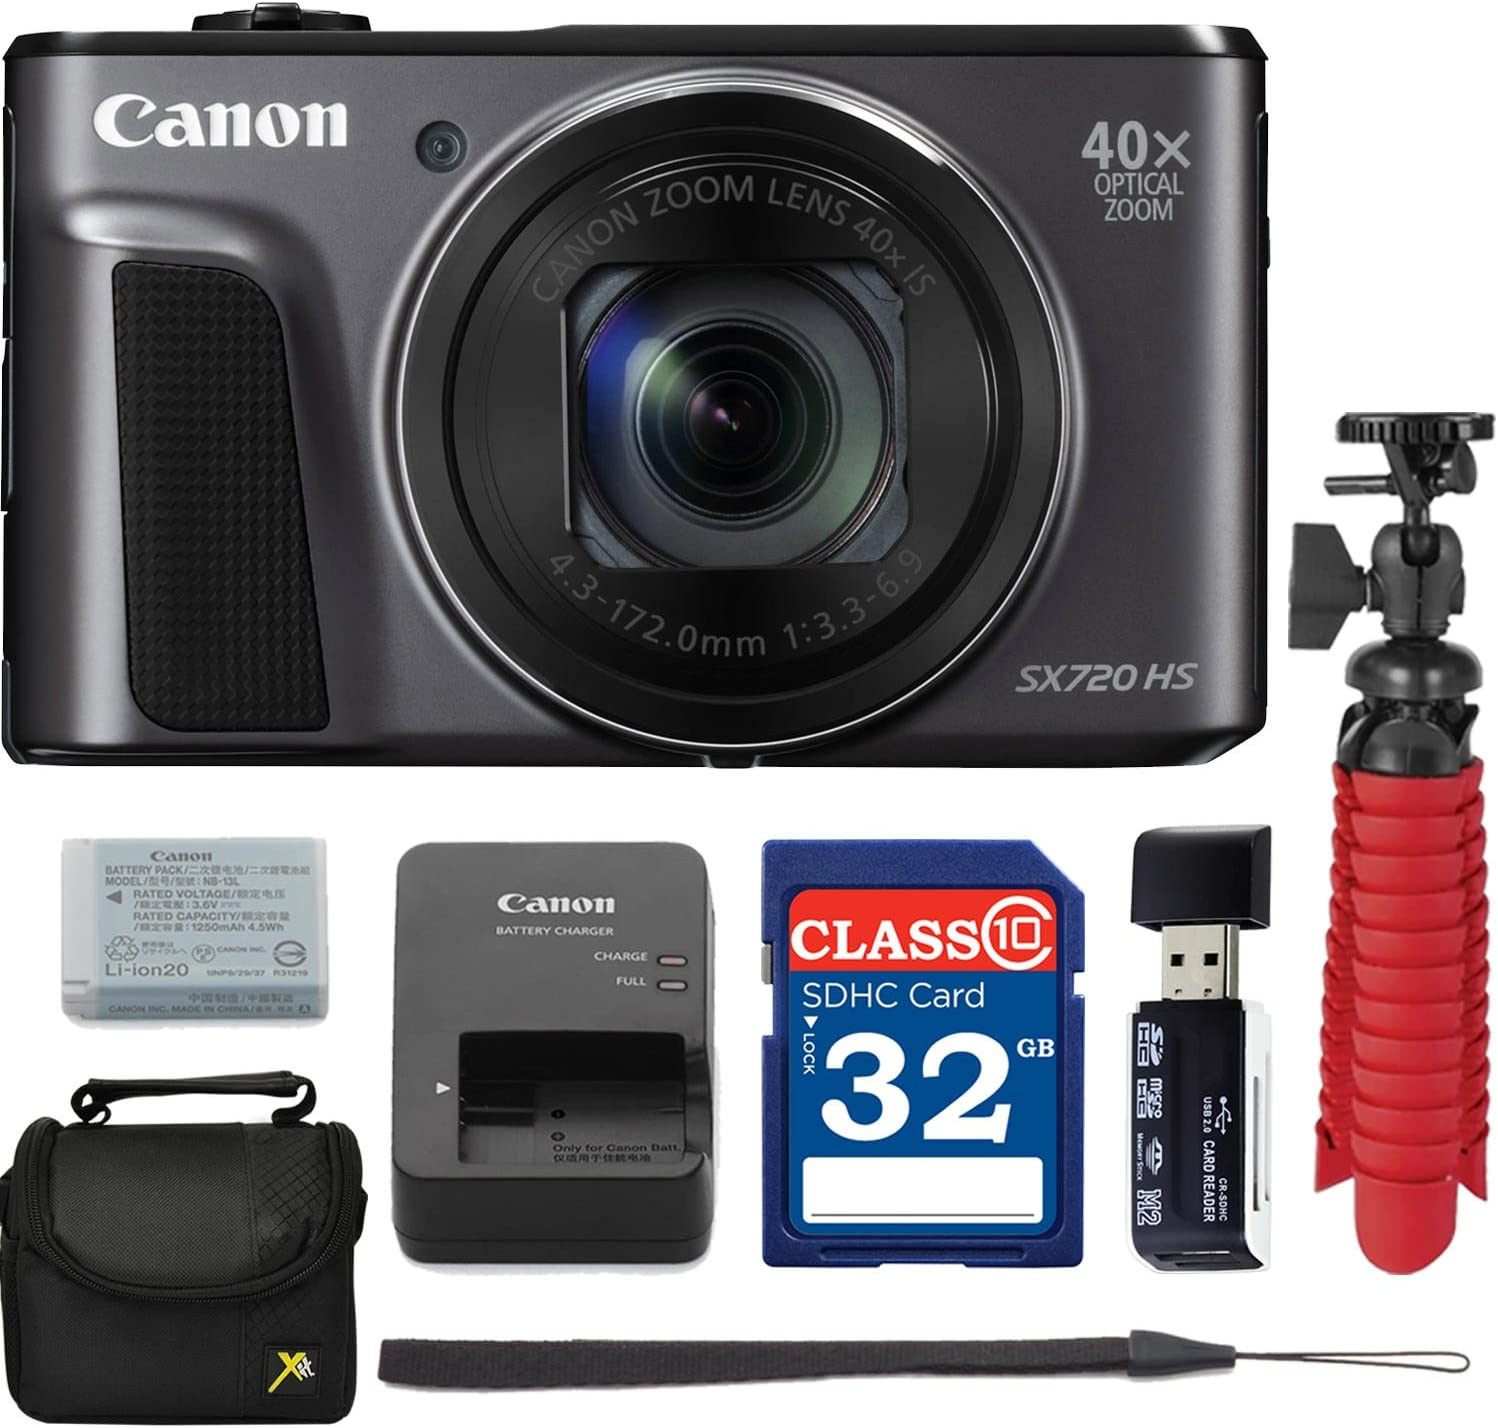 Canon PowerShot SX720 HS Digital Camera with Free Accessory Bundle Including 32 GB SD Memory Card + USB Card Reader + Spider Tripod + Camera Case - International Version